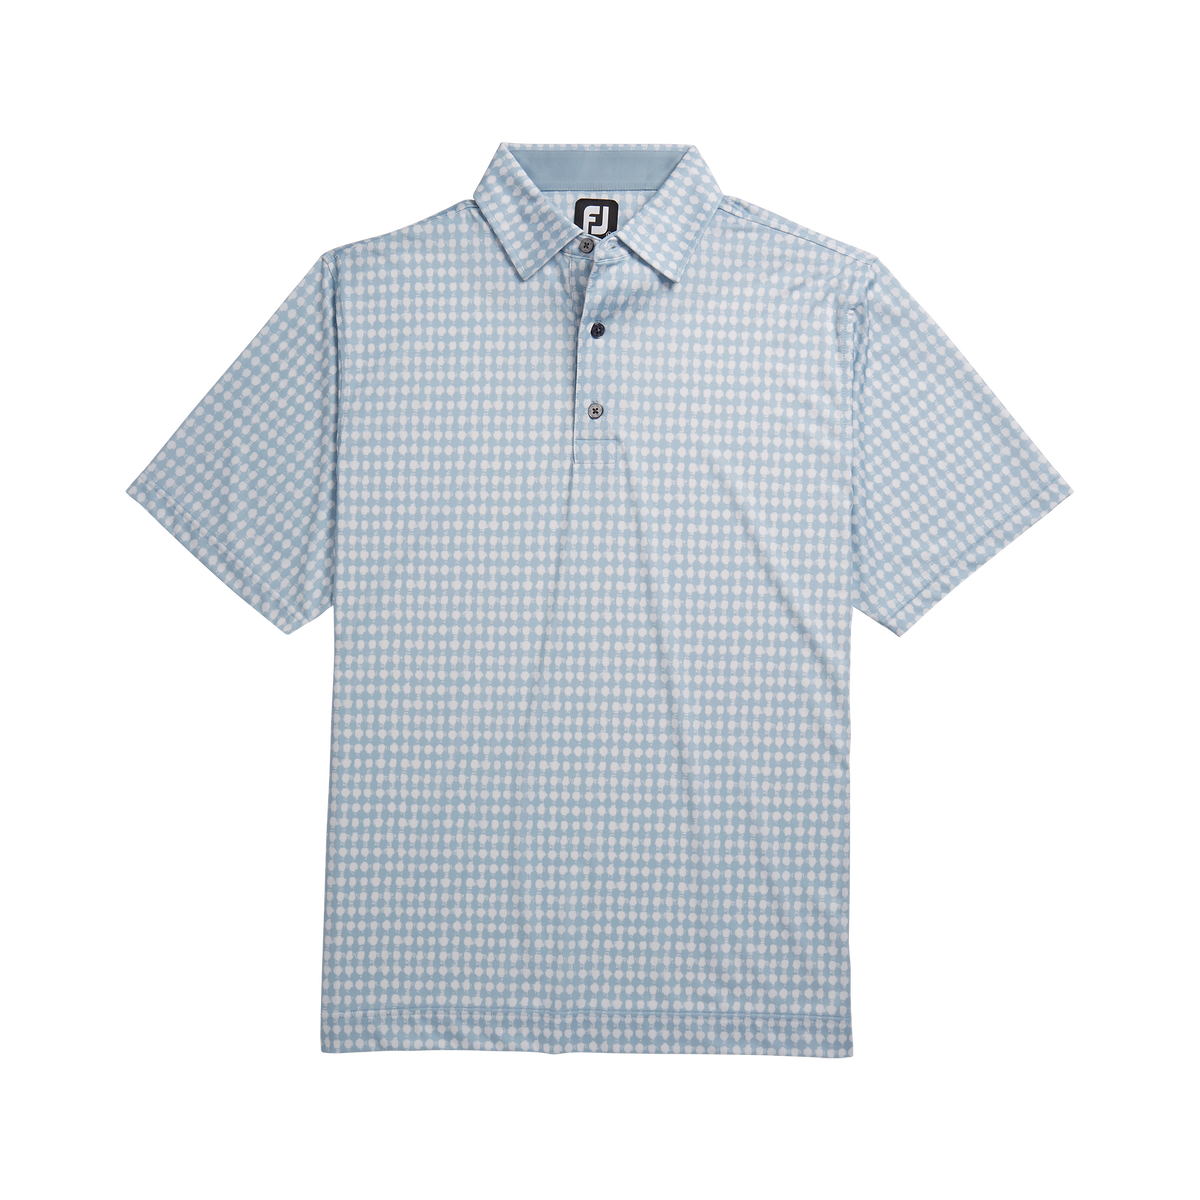 Lisle Gingham Fray Print Self Collar